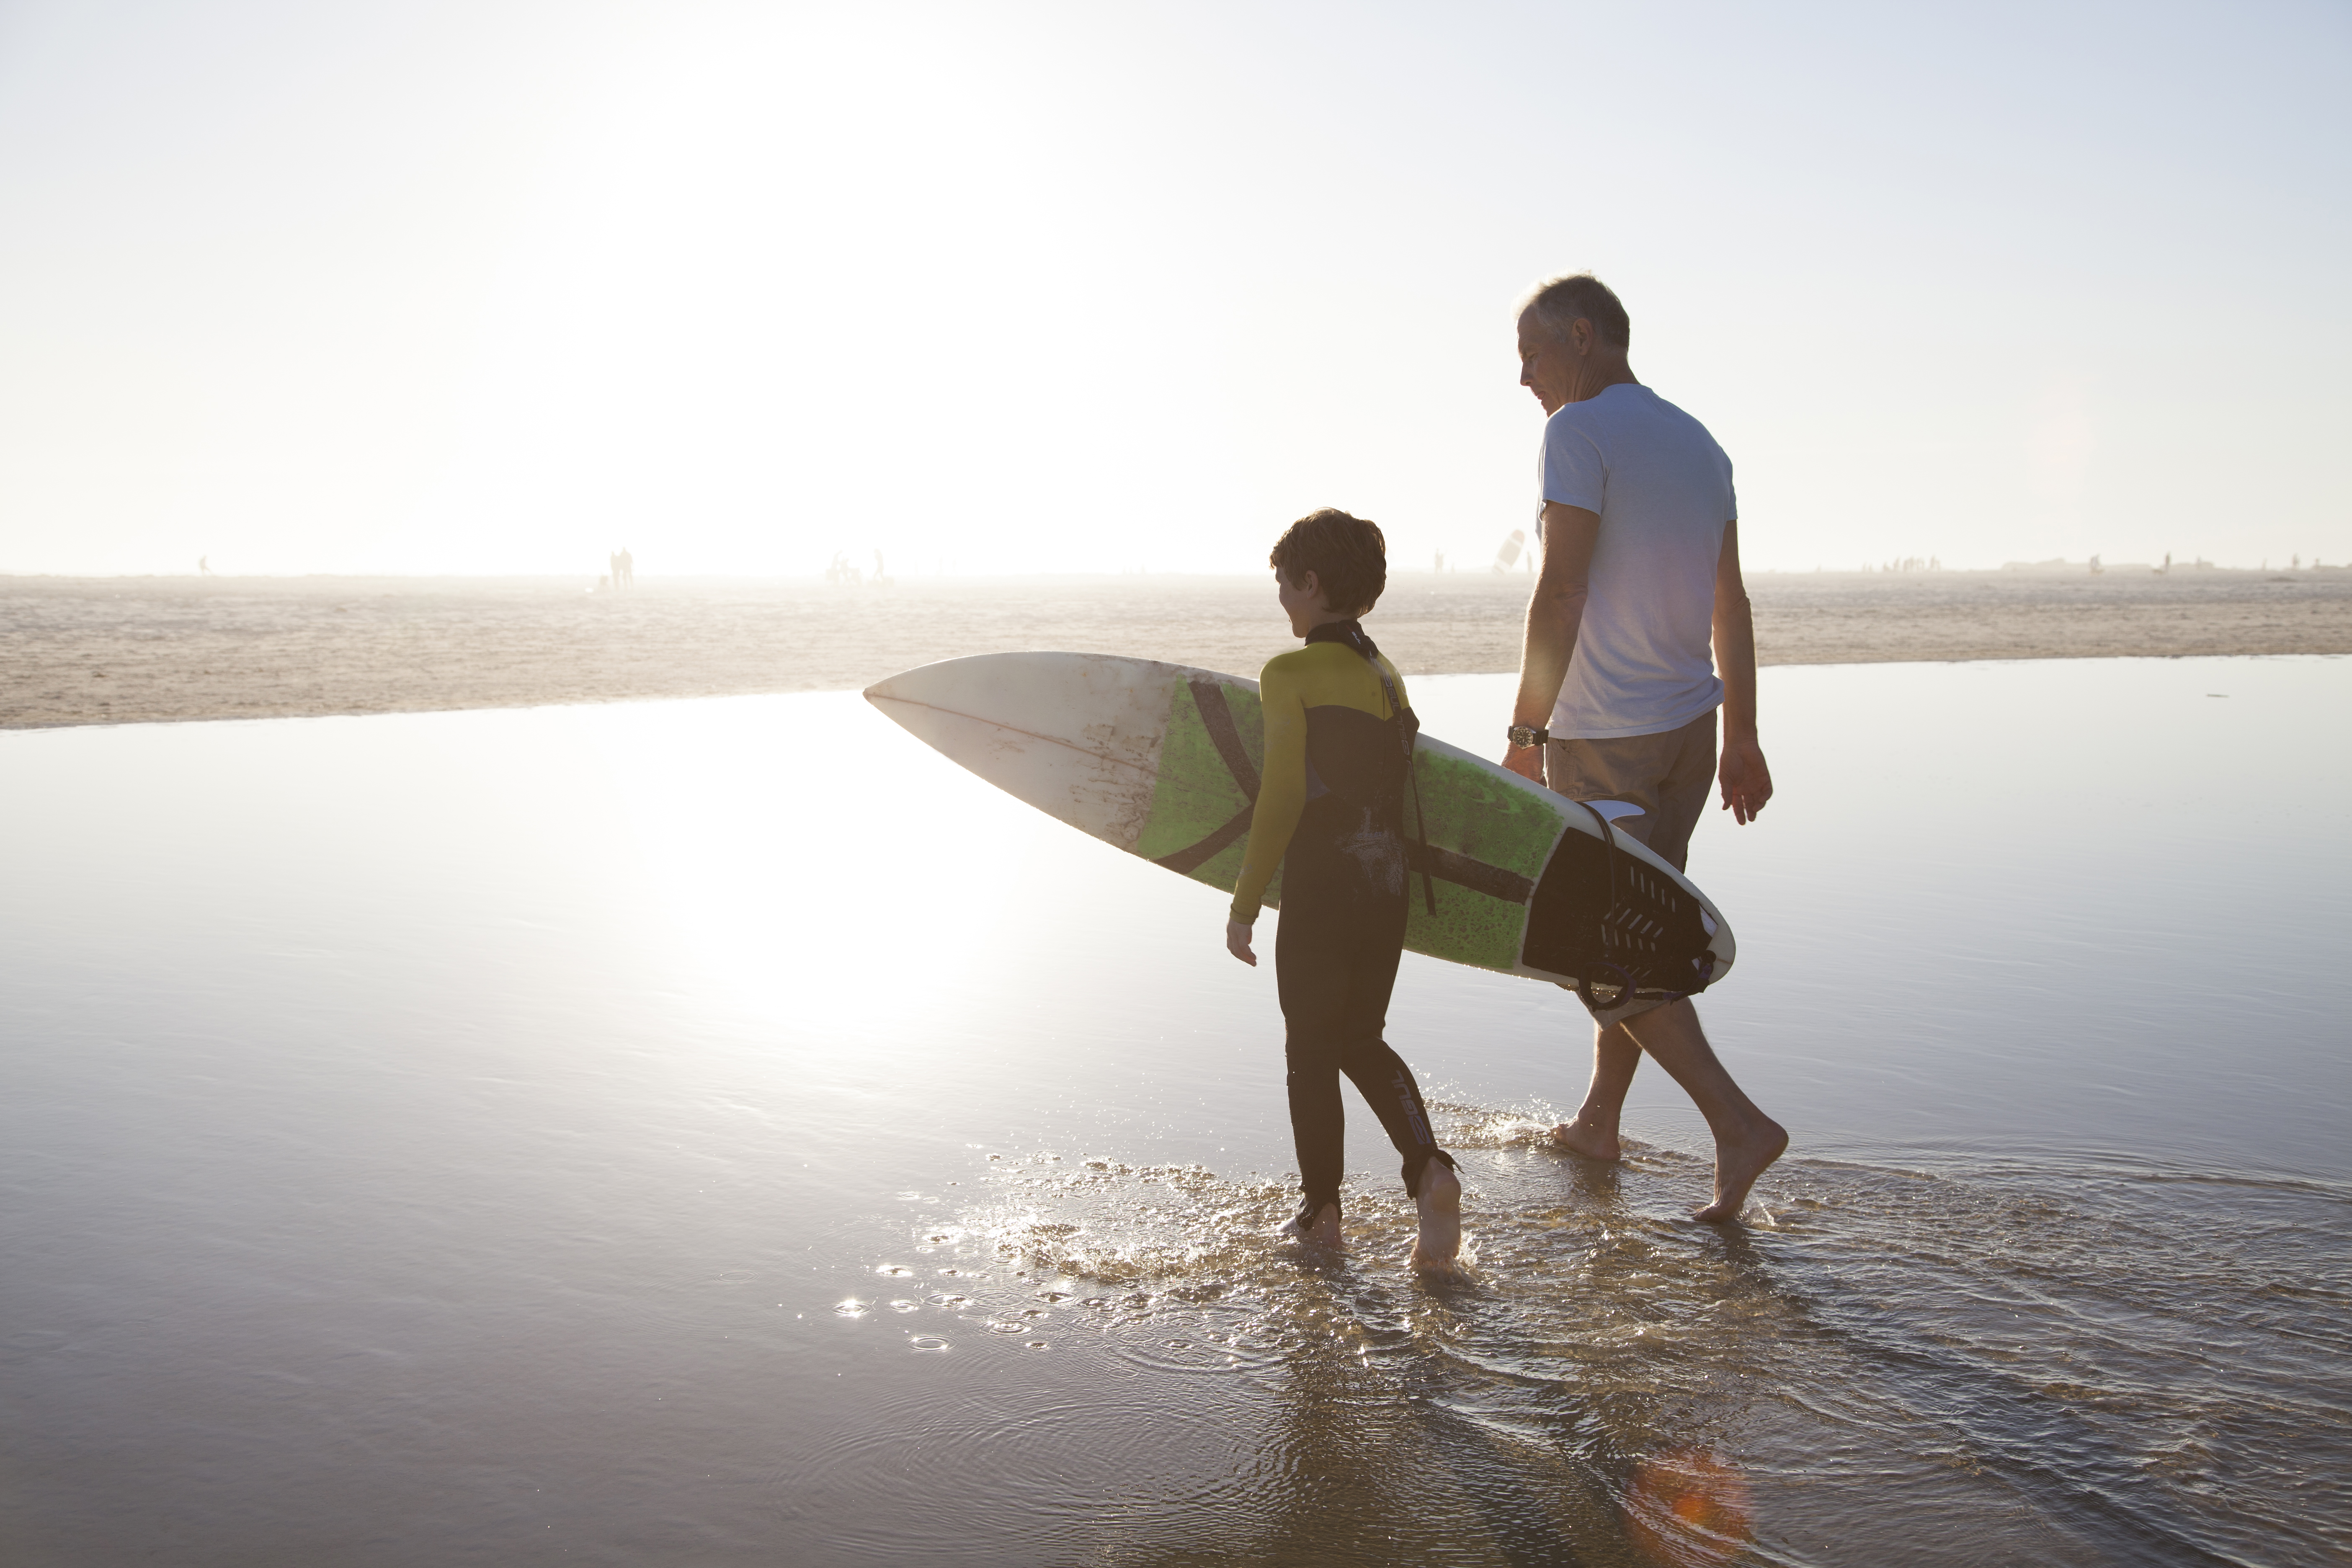 GettyImages-557921435_Surfing with Pops.jpg